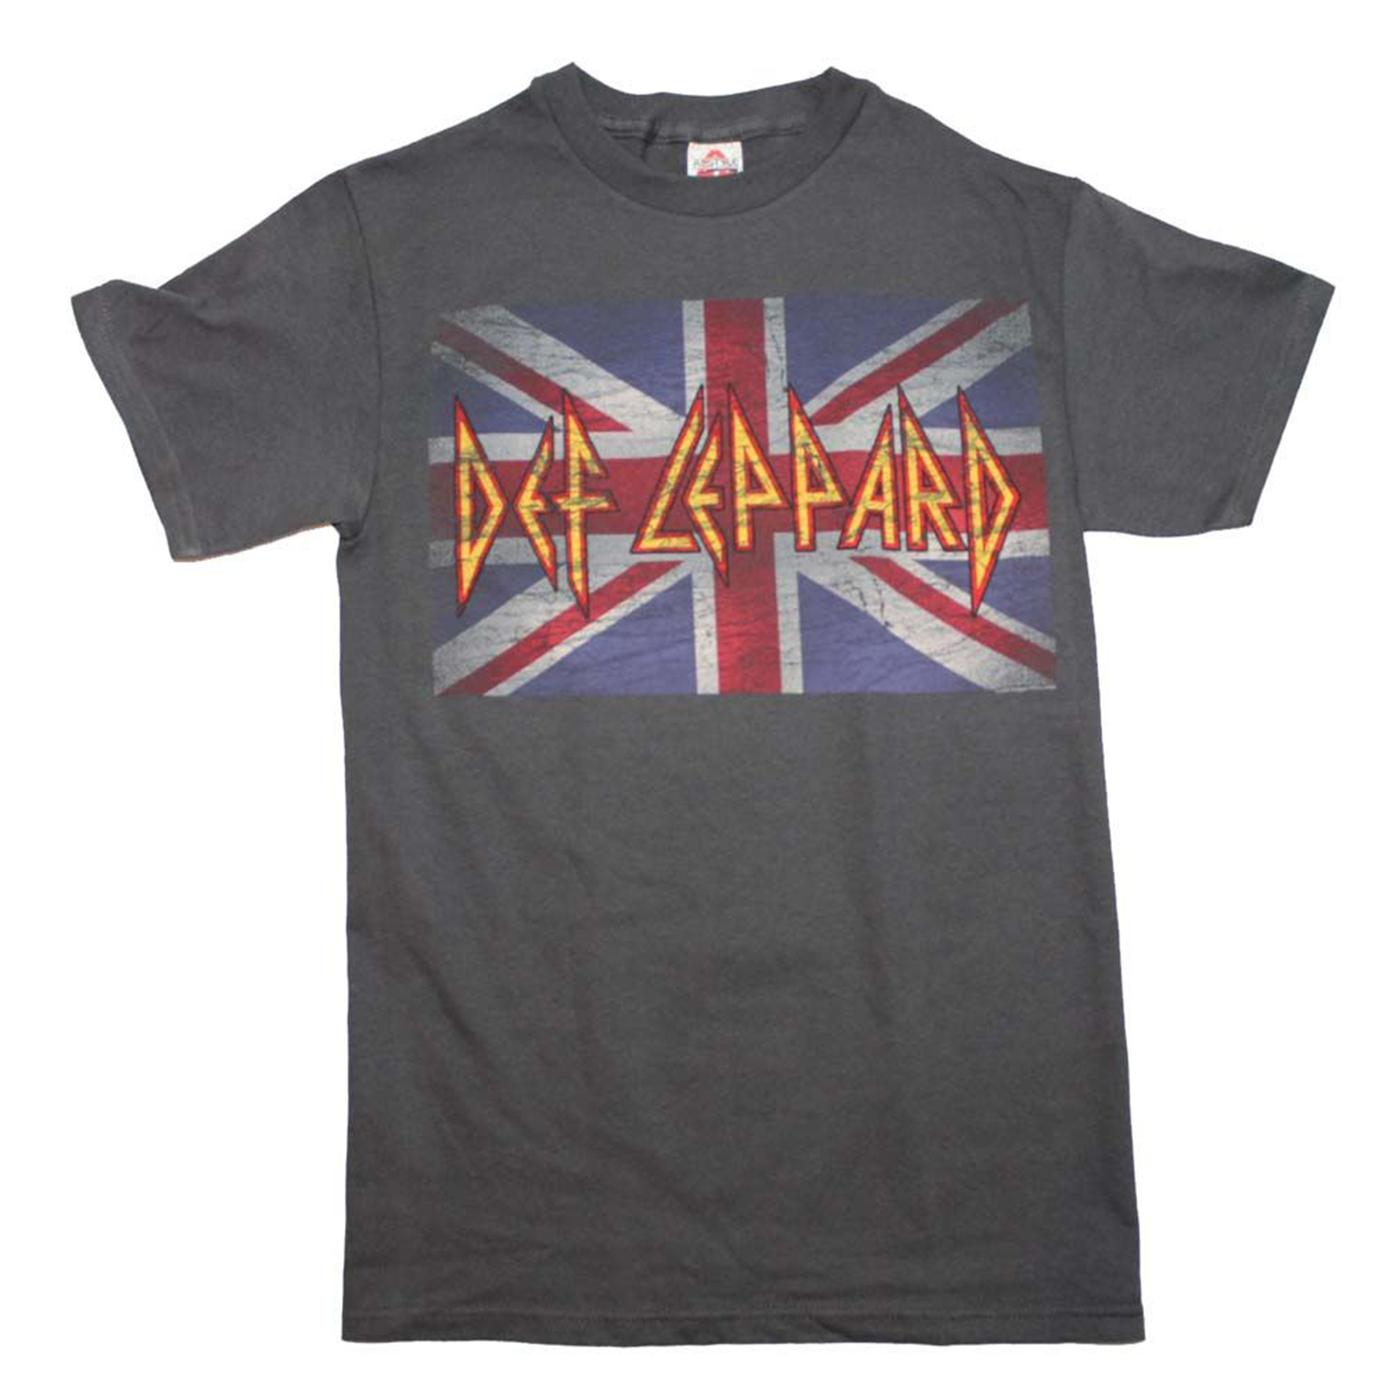 8759f5acf51 Def Leppard Band Logo British Flag T Shirt Mens 100% Cotton Short Sleeve  Print Pride Of The Creature T Shirts Basic Tops Really Funny T Shirts Funny  Vintage ...